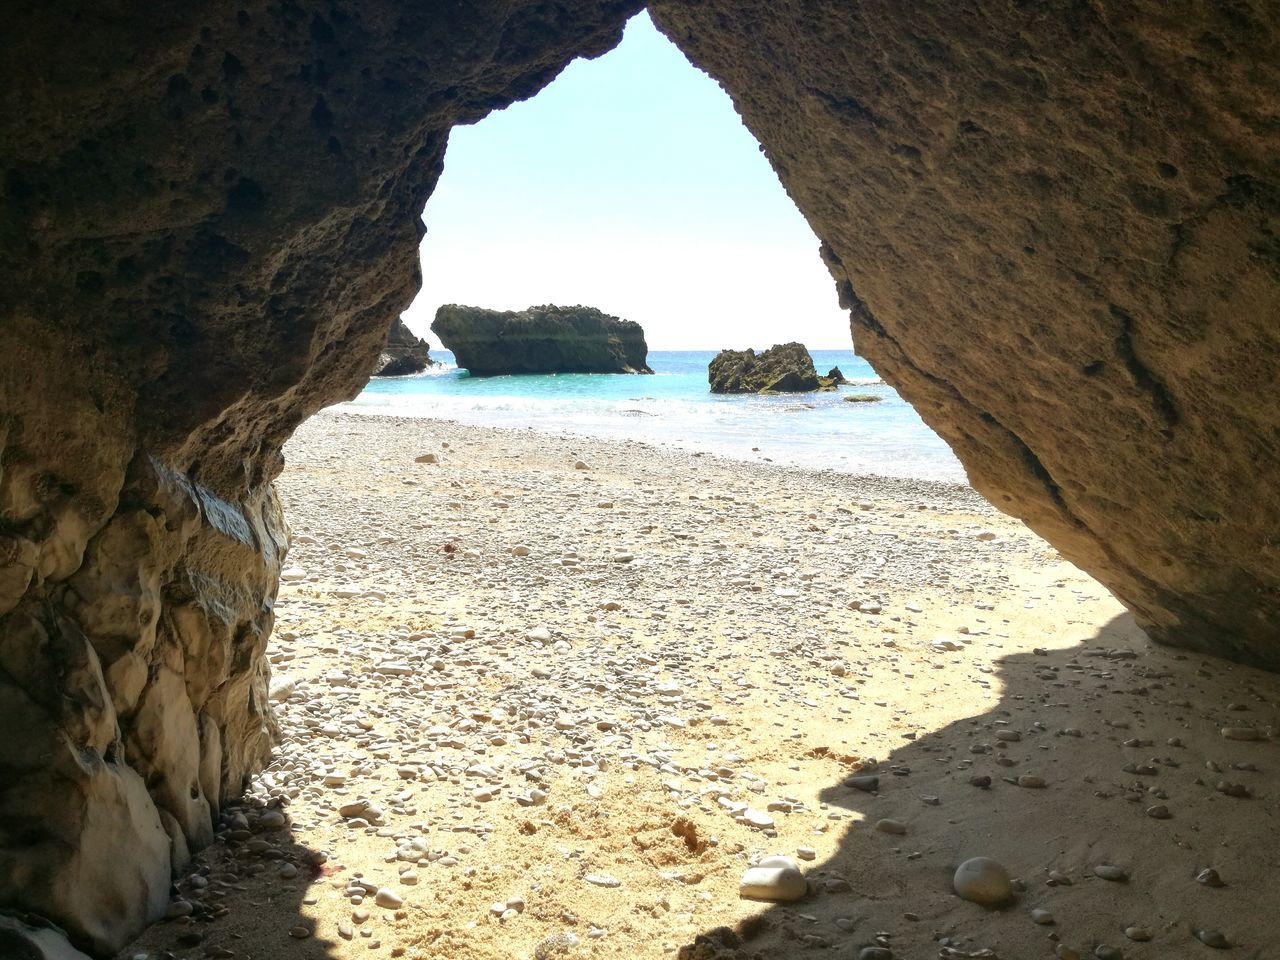 rock formation, rock - object, nature, sand, beauty in nature, beach, day, sea, scenics, sunlight, natural arch, tranquility, shadow, tranquil scene, outdoors, physical geography, no people, cliff, water, sky